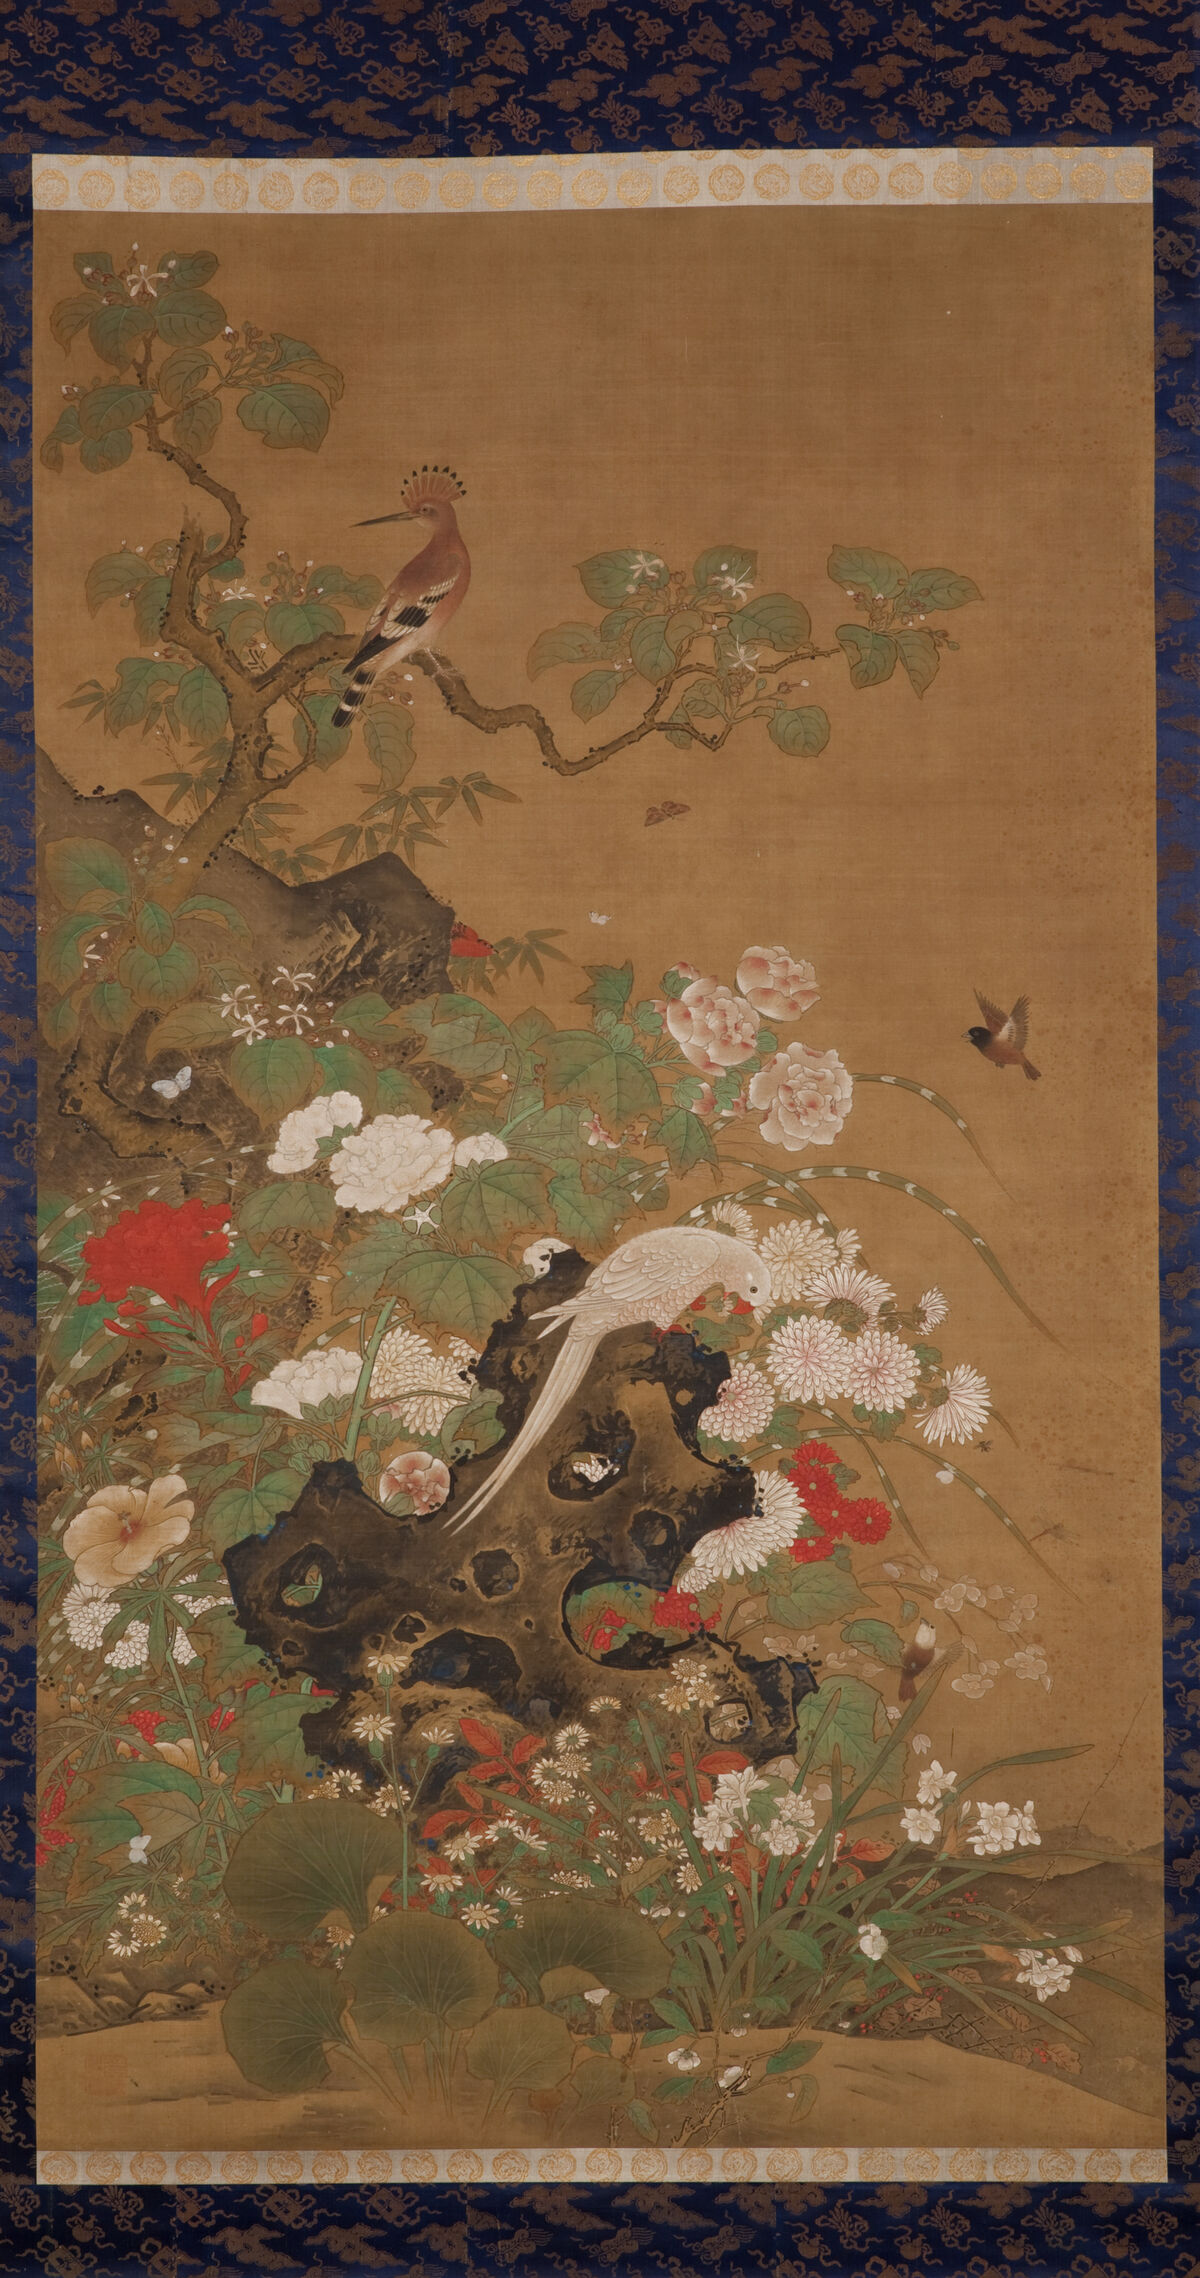 Hasegawa Tōhaku, Flowers and Birds of Four Seasons, 16th–18th century (Momoyama–Edo period).